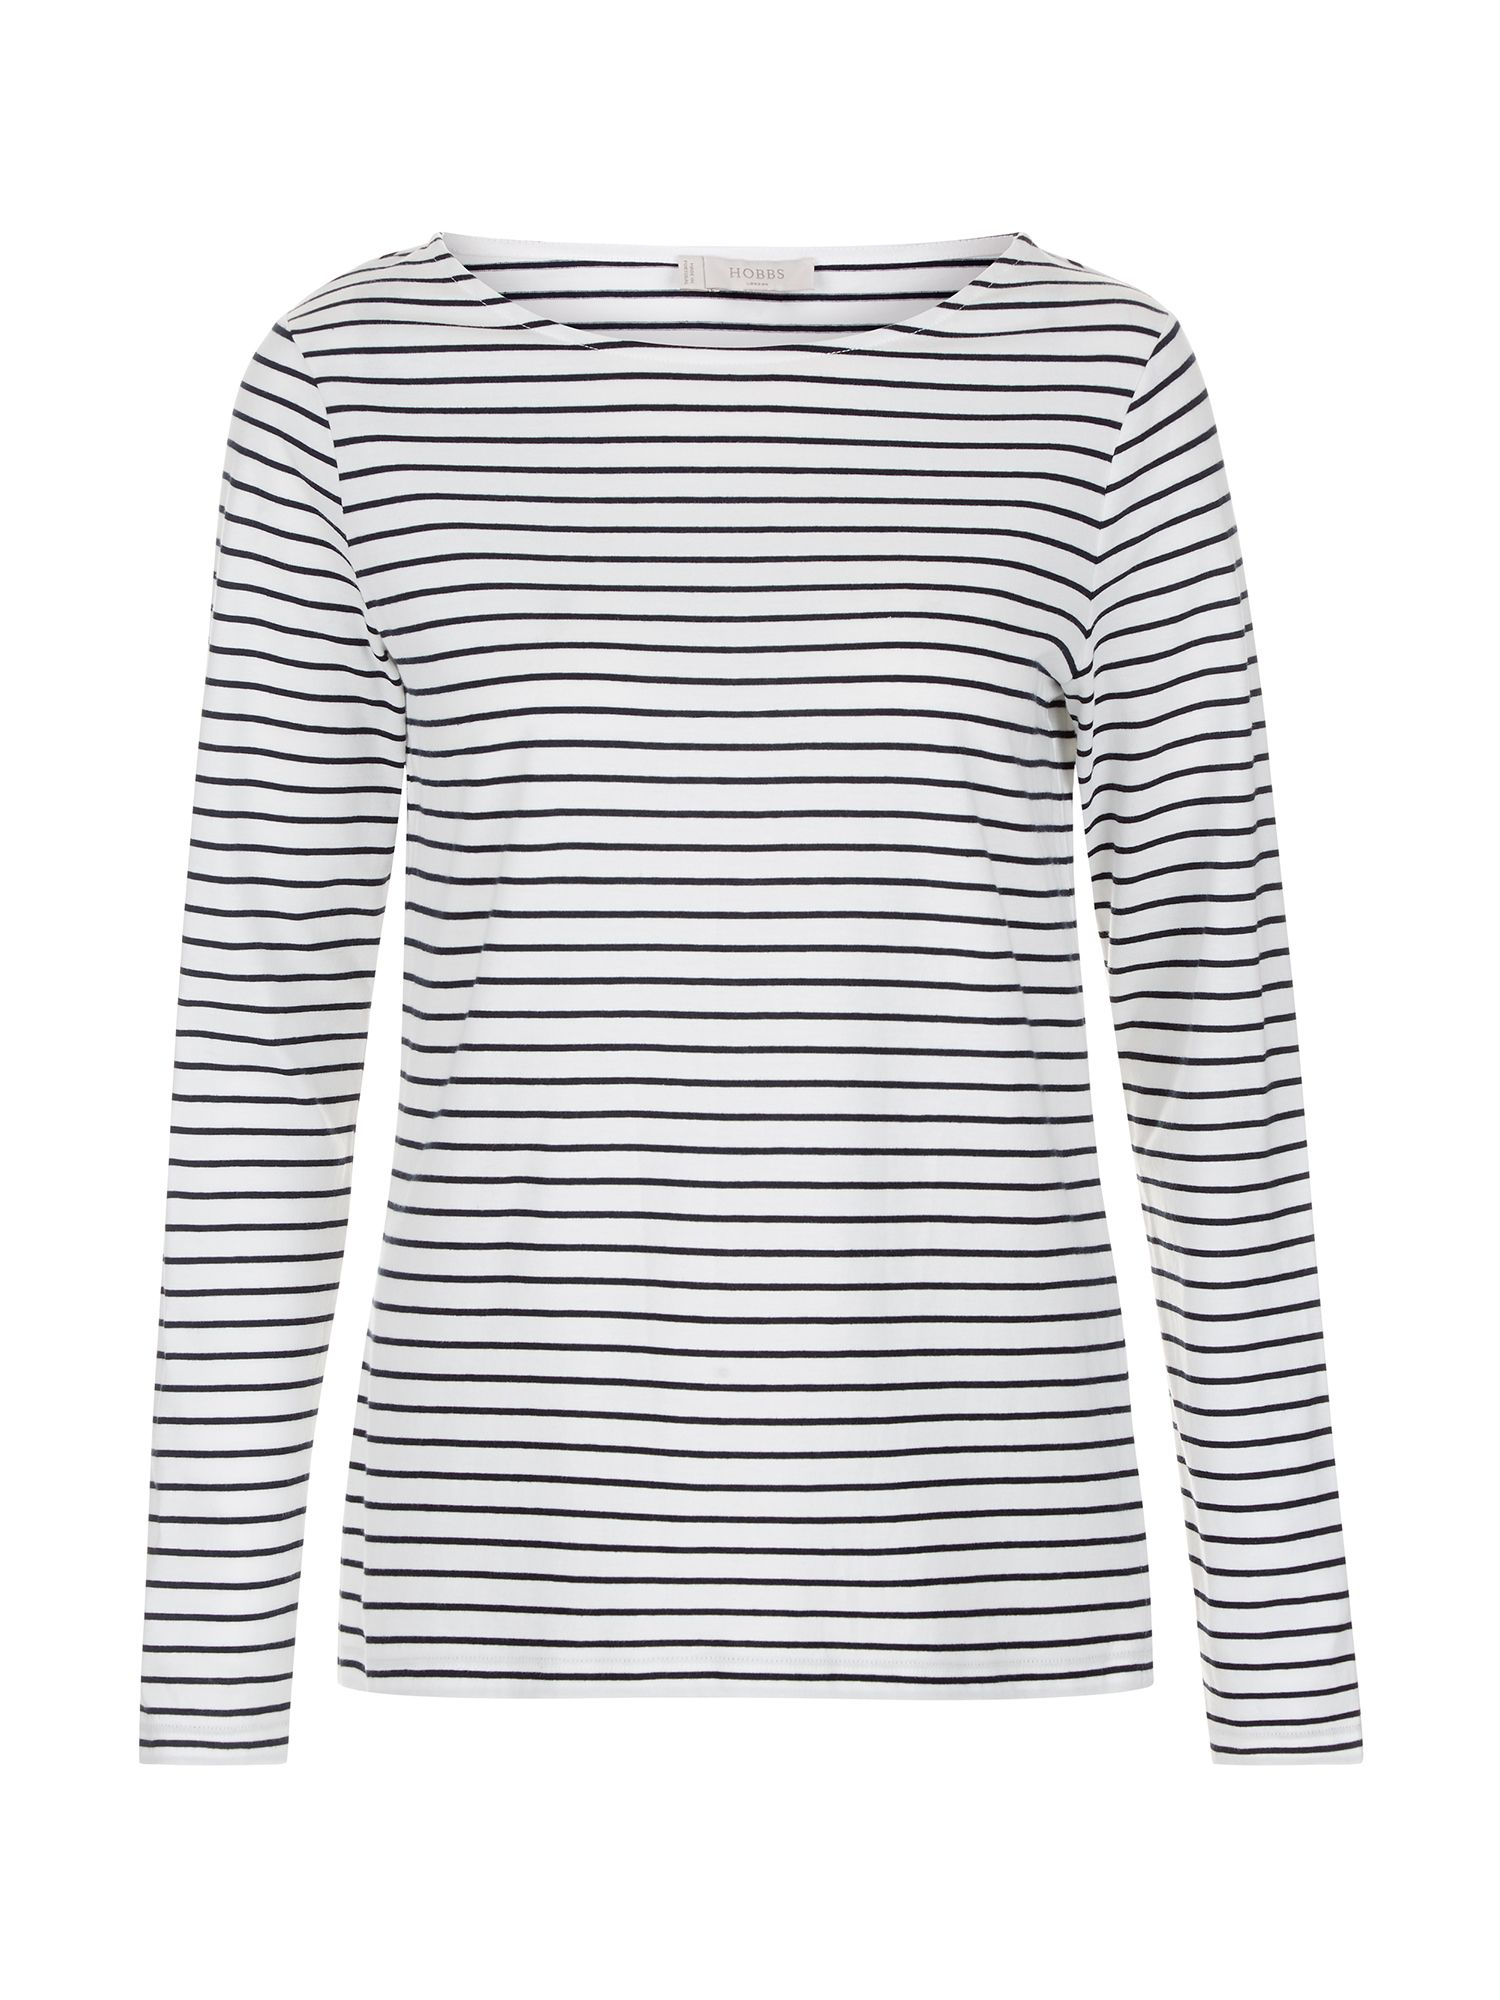 Hobbs Summer Breton, Multi-Coloured